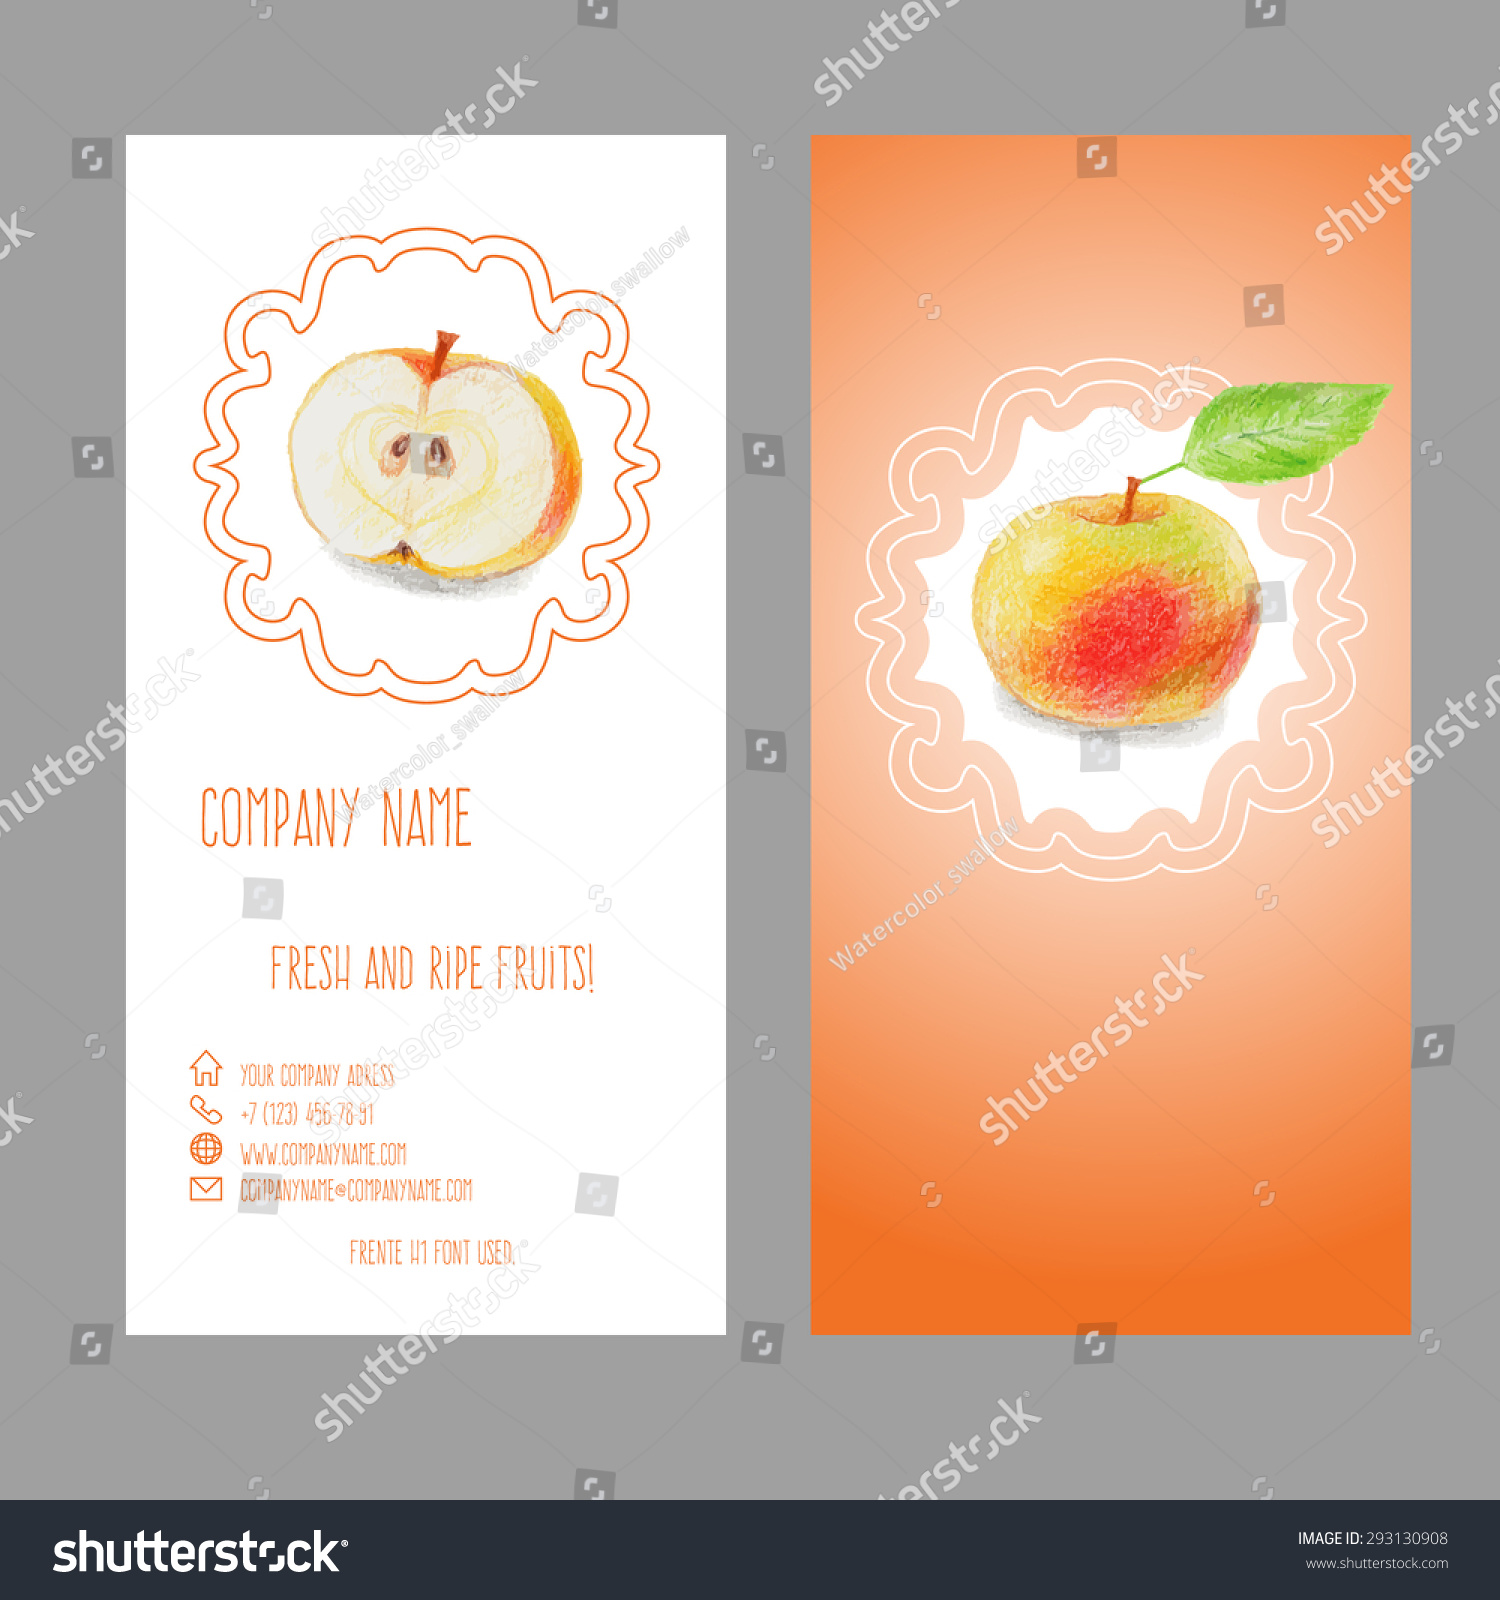 Business Card Apple Drawn Color Pencils Stock Vector 293130908 ...